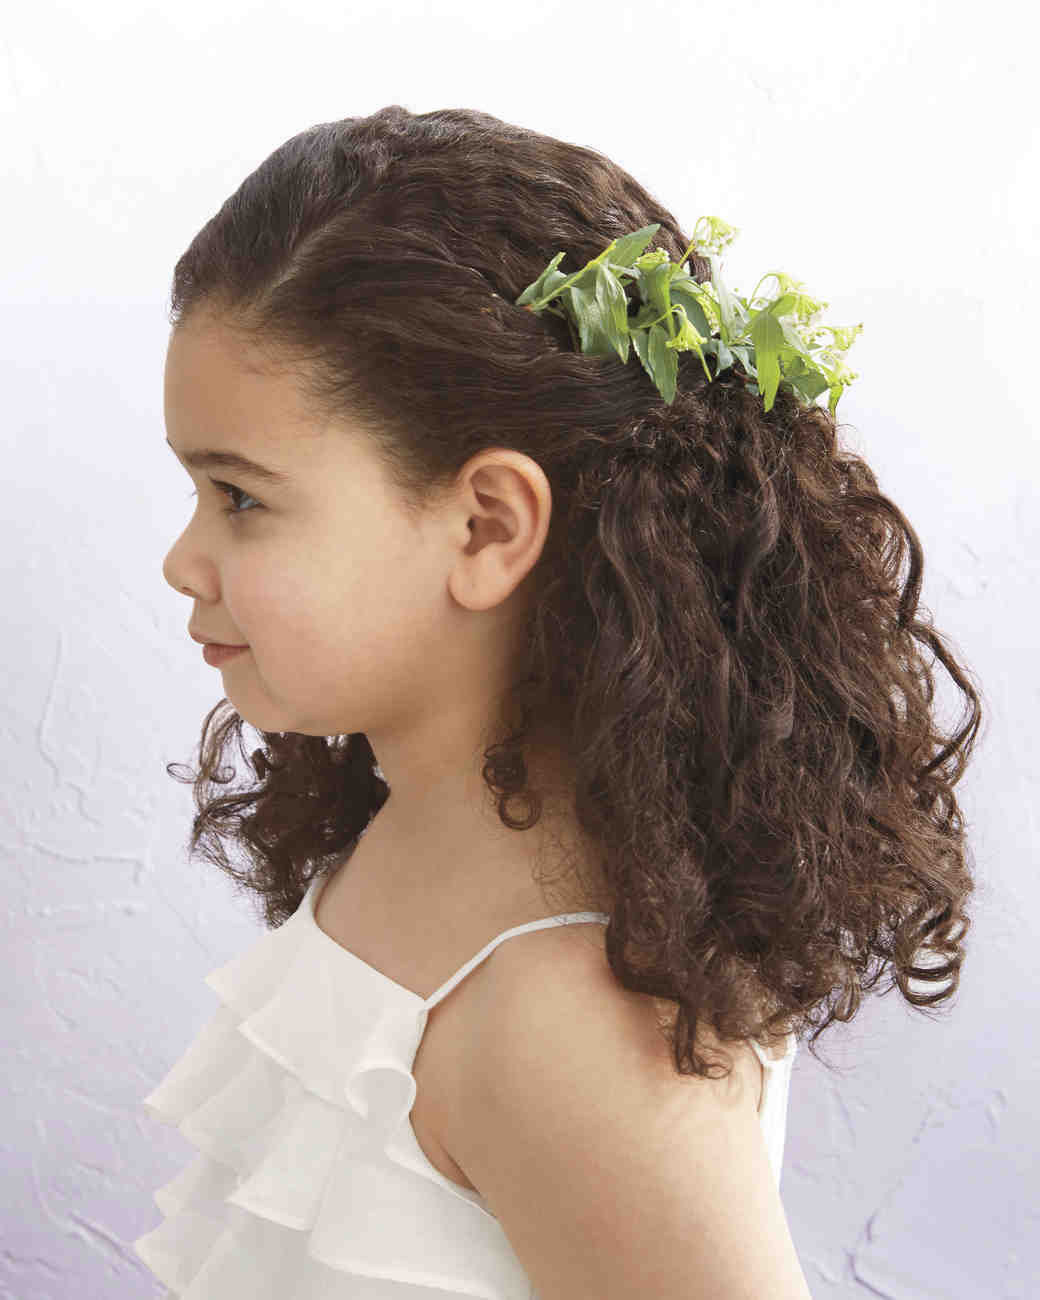 Hairstyles For Girls In Wedding: Flower Girl Hairstyles That Are Cute And Comfy